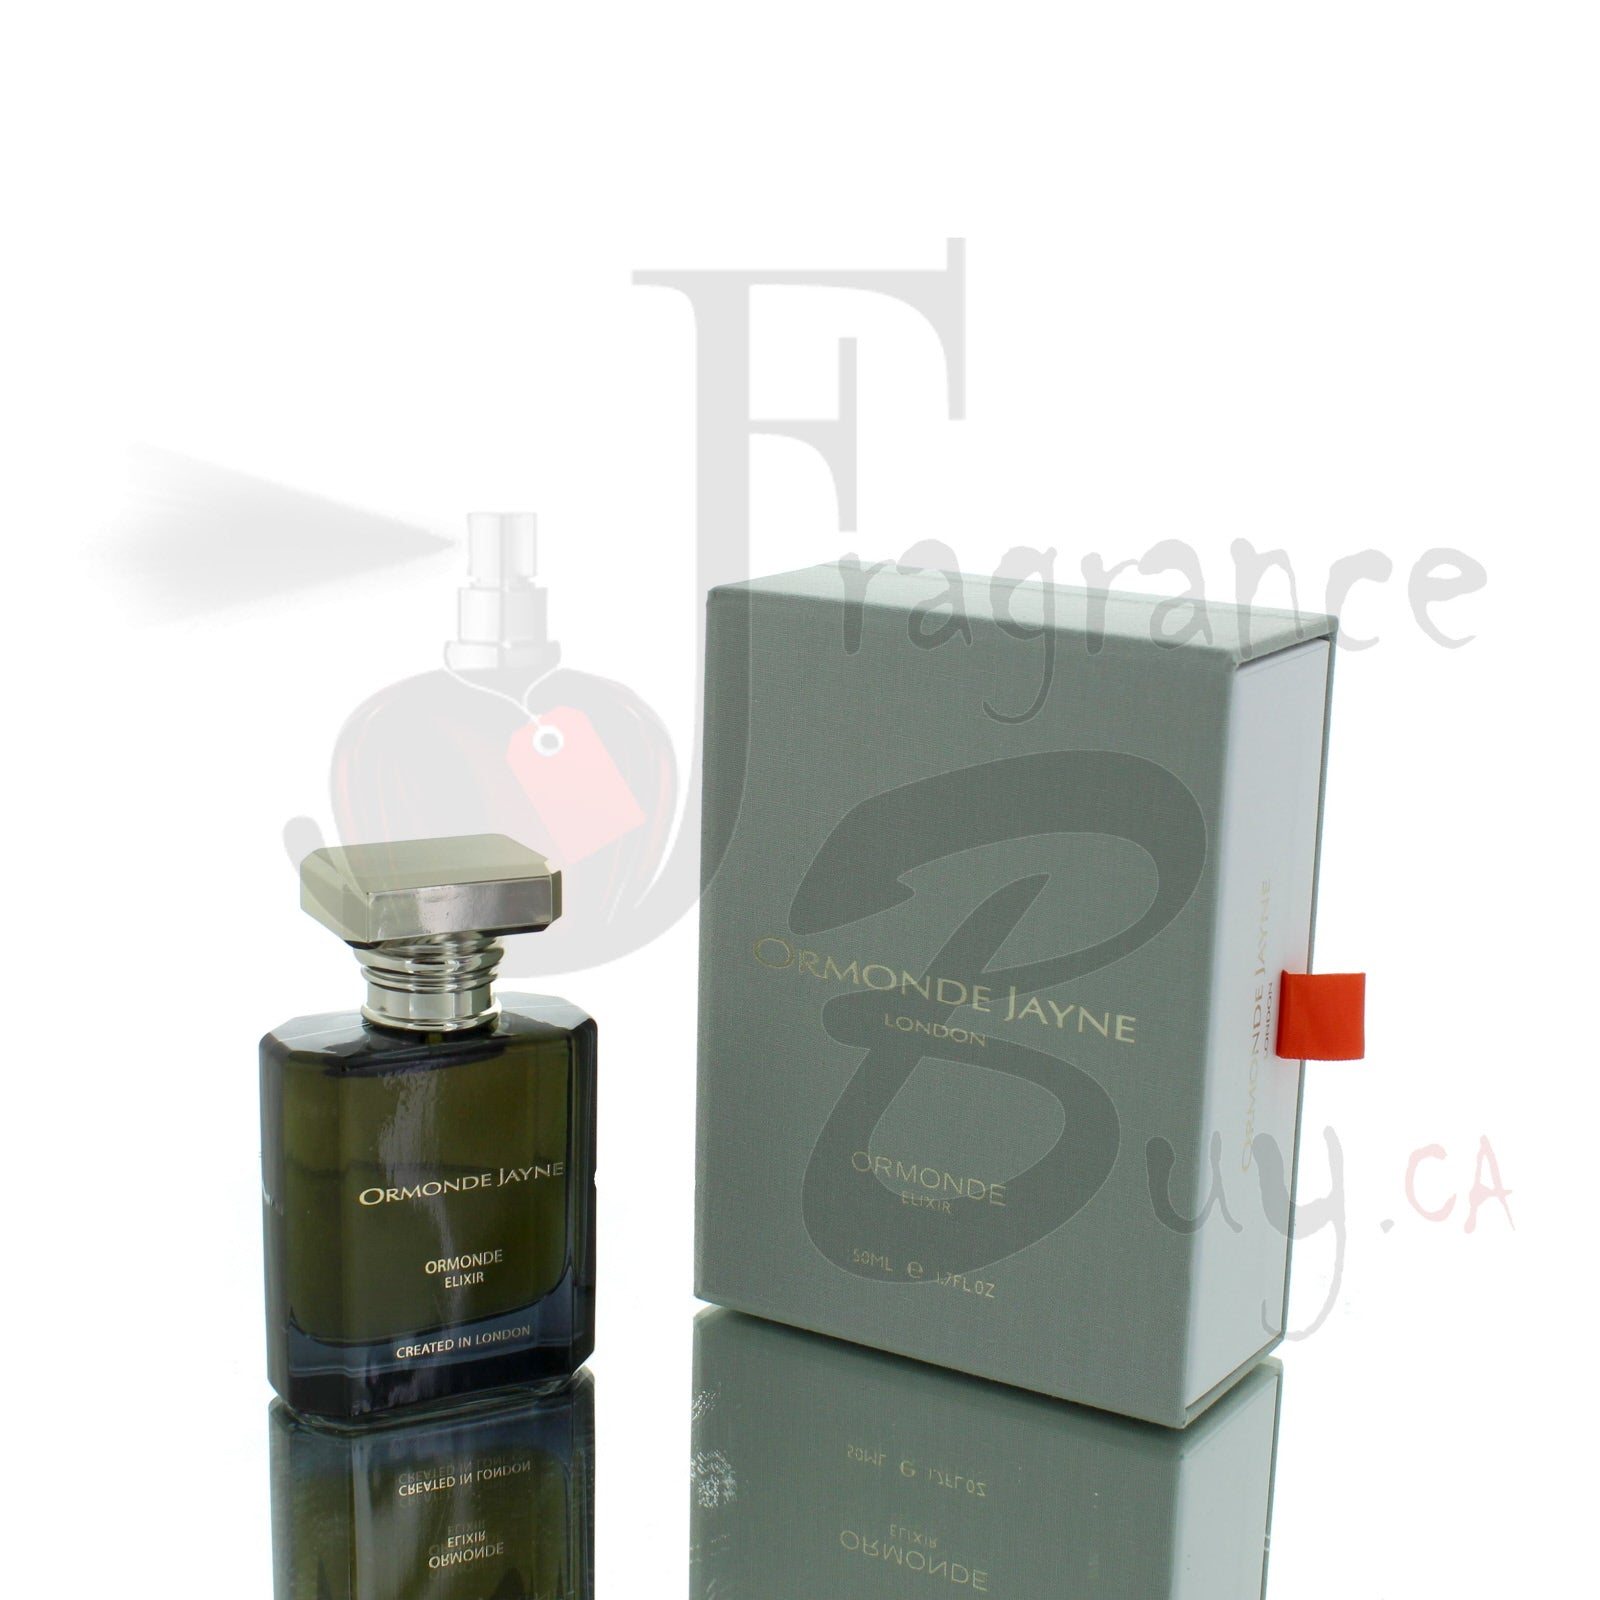 Ormonde Jayne Ormonde Elixir For Man/Woman